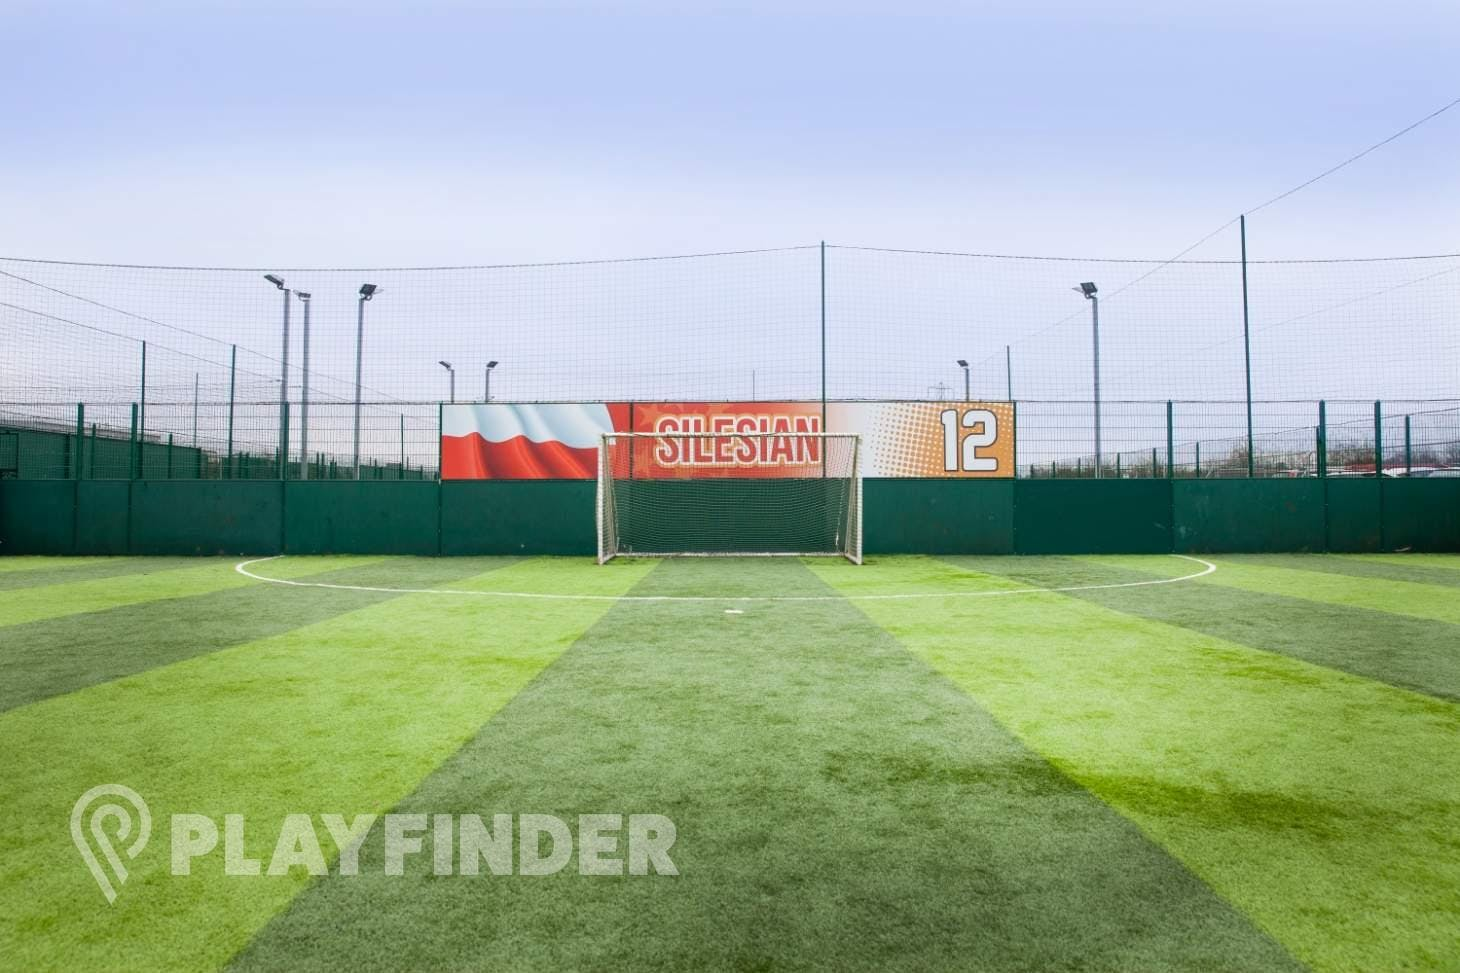 Goals Chester 7 a side | 3G Astroturf football pitch